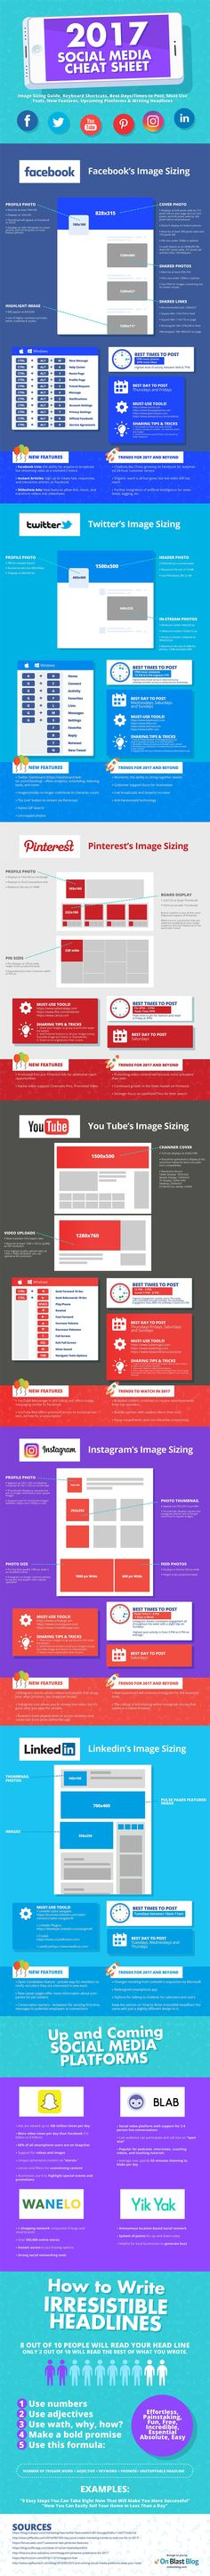 Social Media Cheat Sheet for 2017 [Infographic] - Social Media Week Marketing Na Internet, Marketing Trends, Marketing Services, Facebook Marketing, Content Marketing, Online Marketing, Social Media Marketing, Digital Marketing, Marketing Products